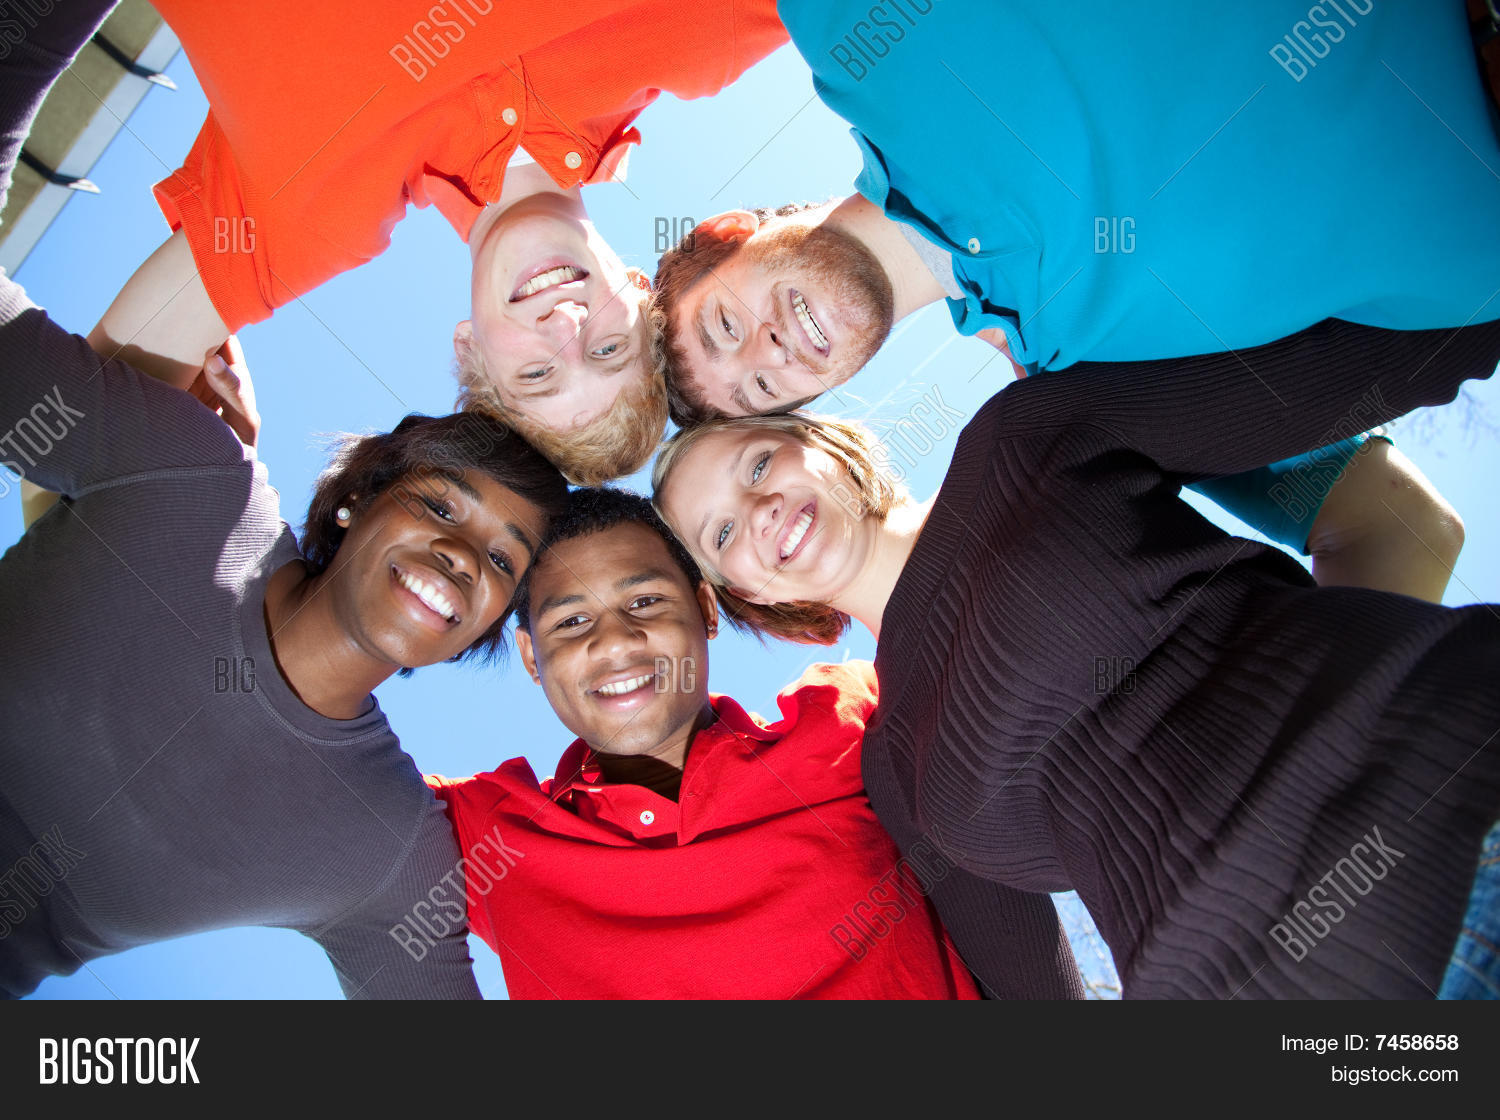 Faces Of Smiling Multi-racial College Students